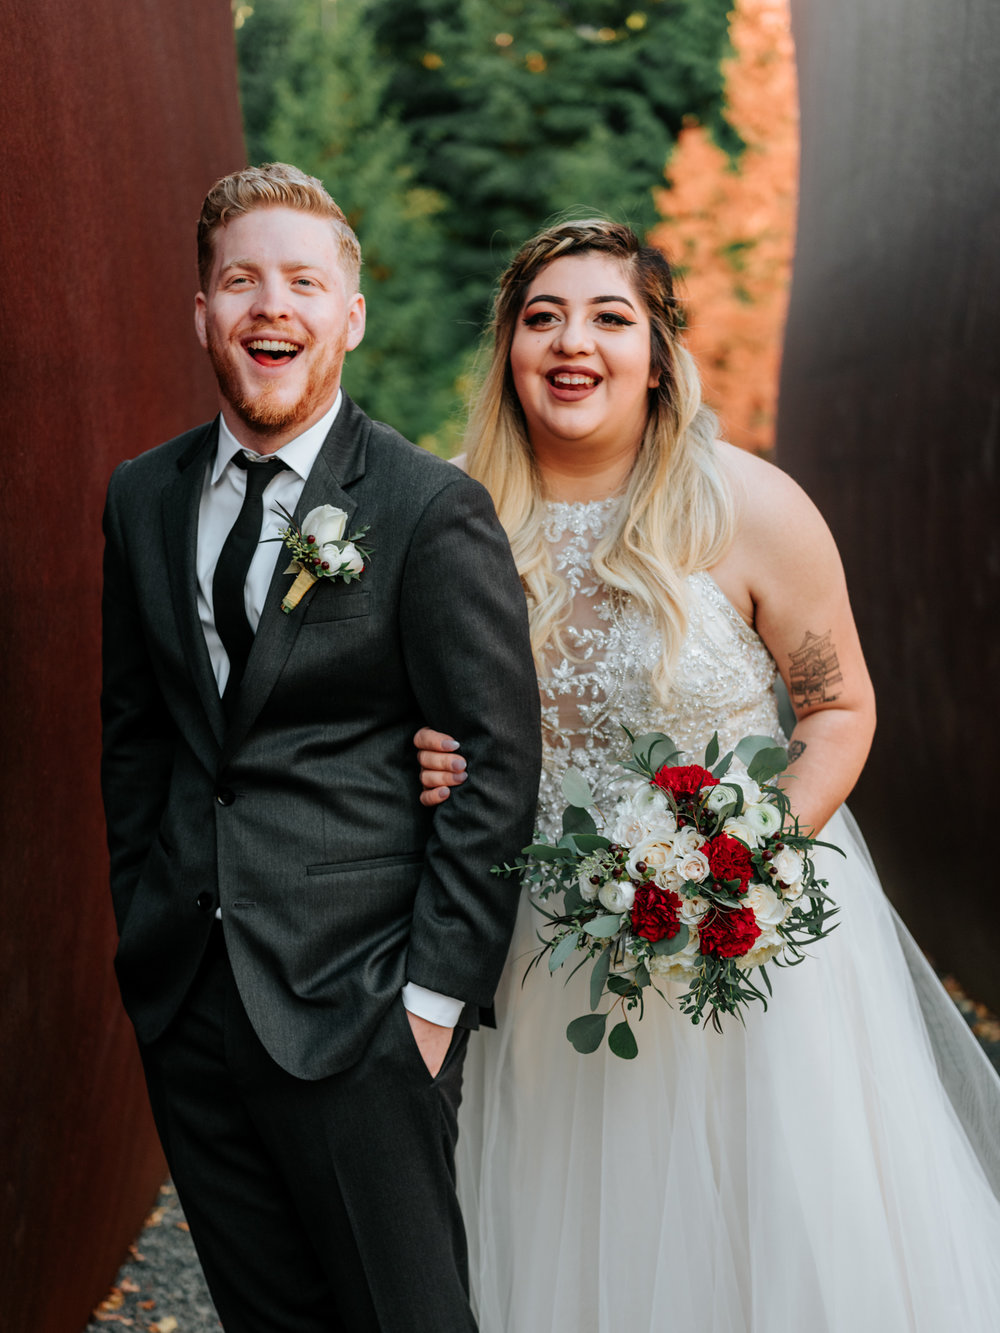 Stolen Glimpses Seattle Wedding Photographers 32.jpg